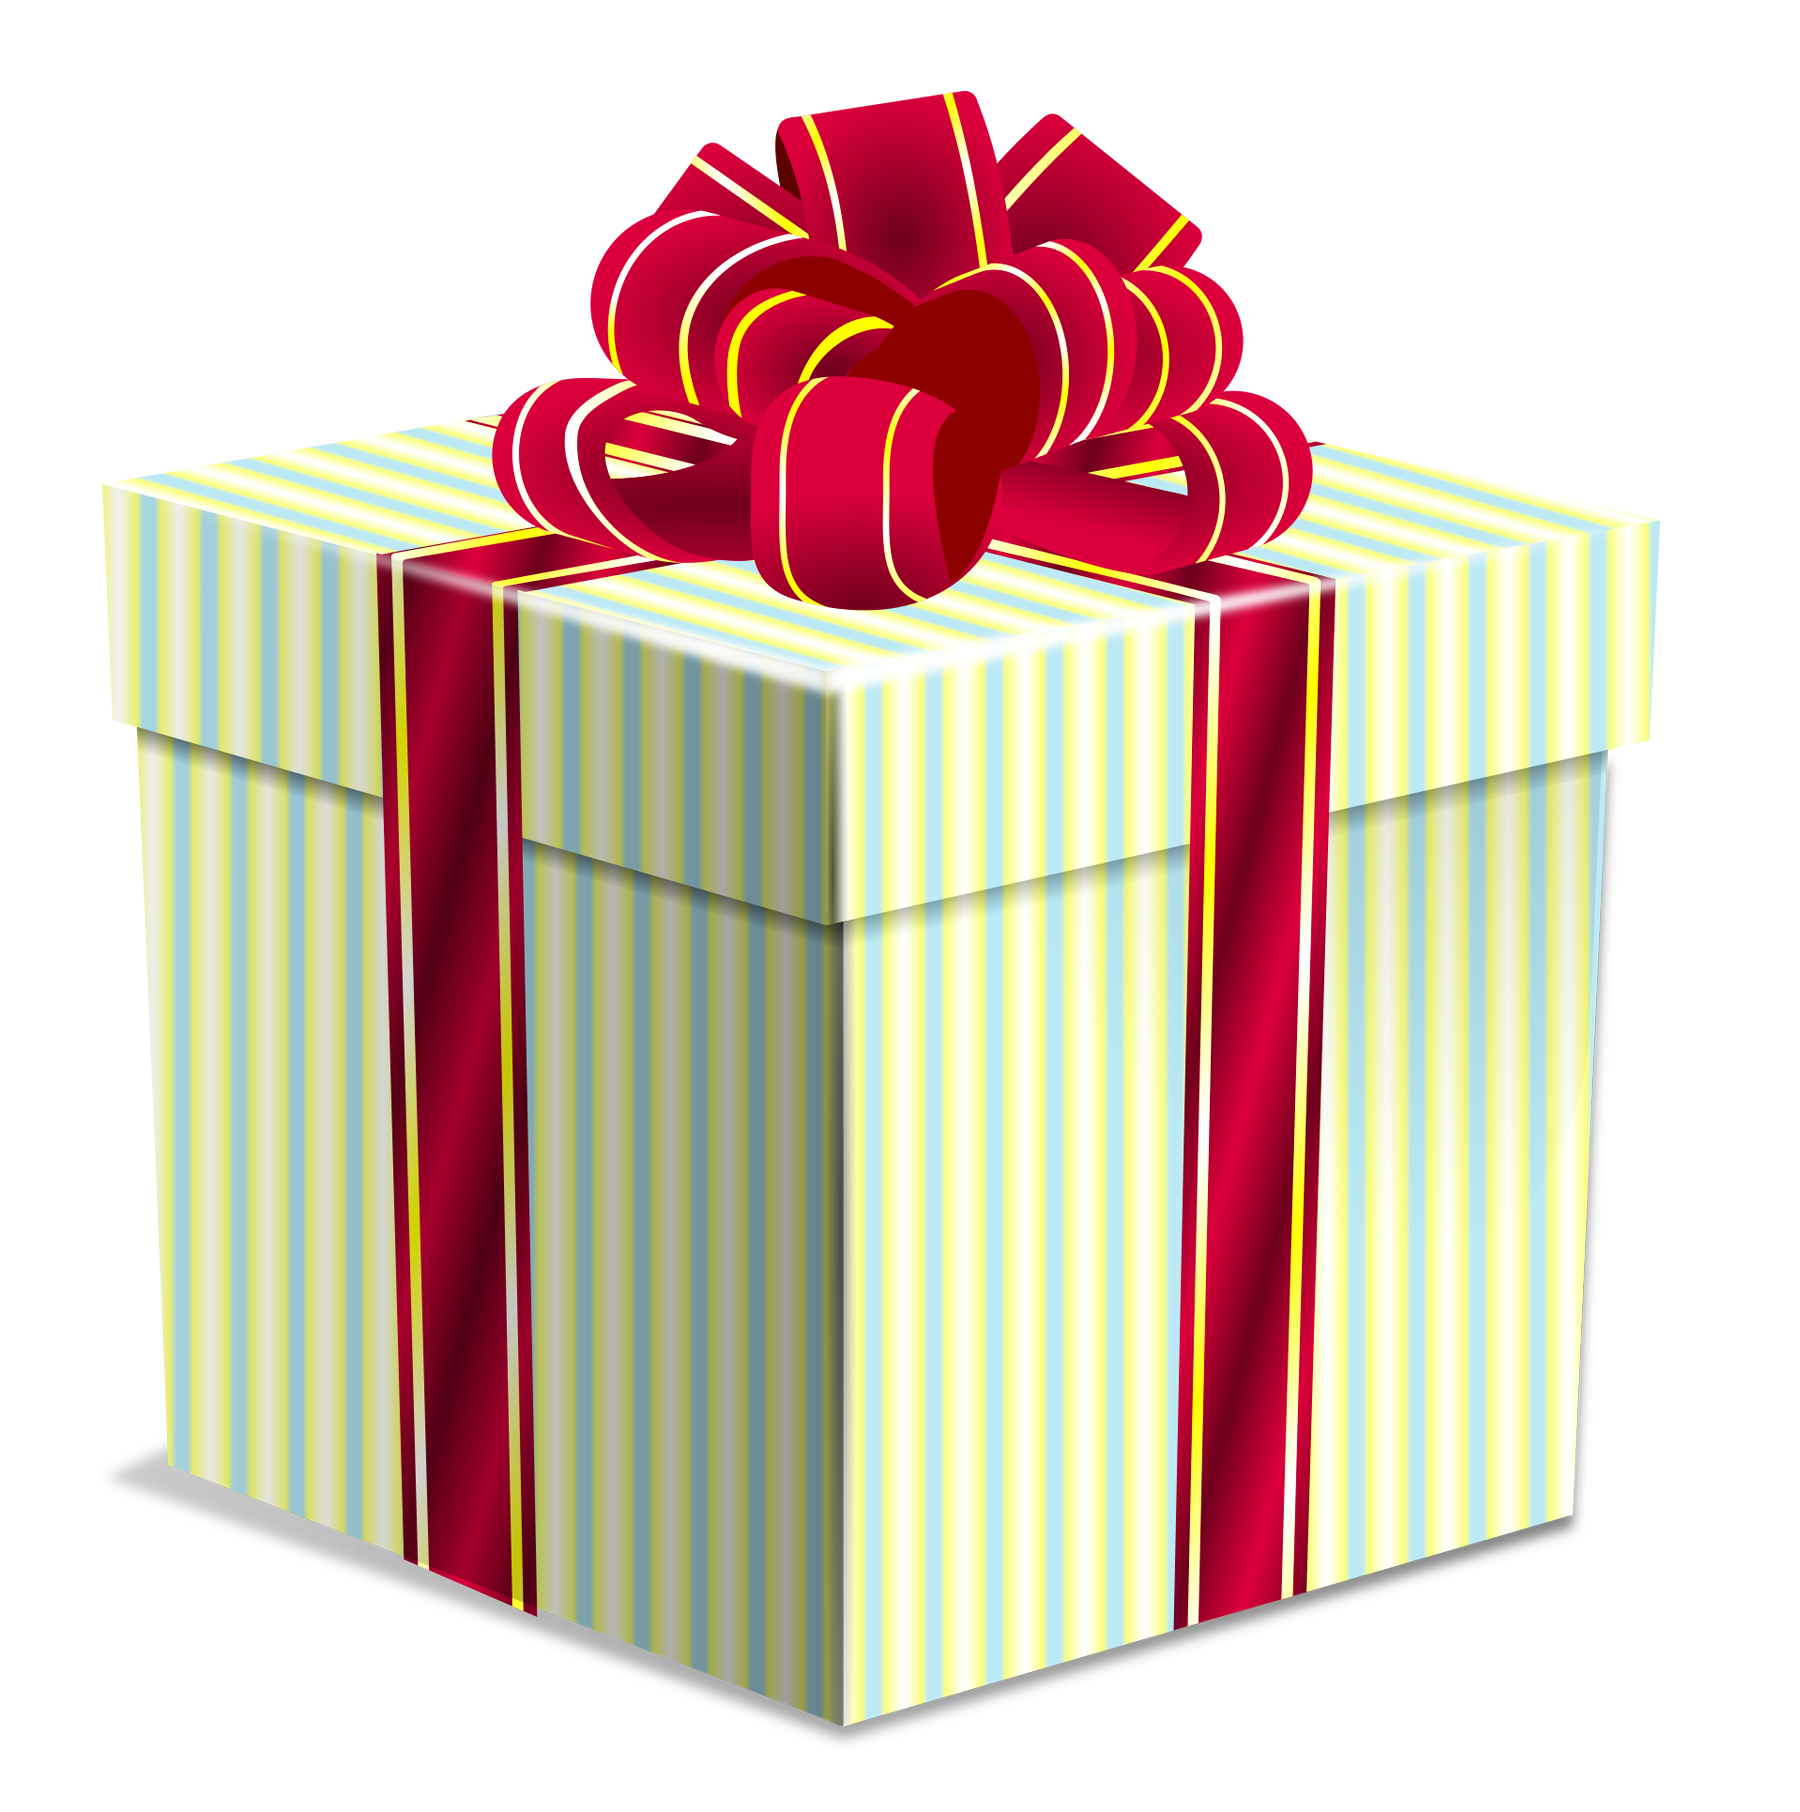 Gift Box PNG Transparent Imag